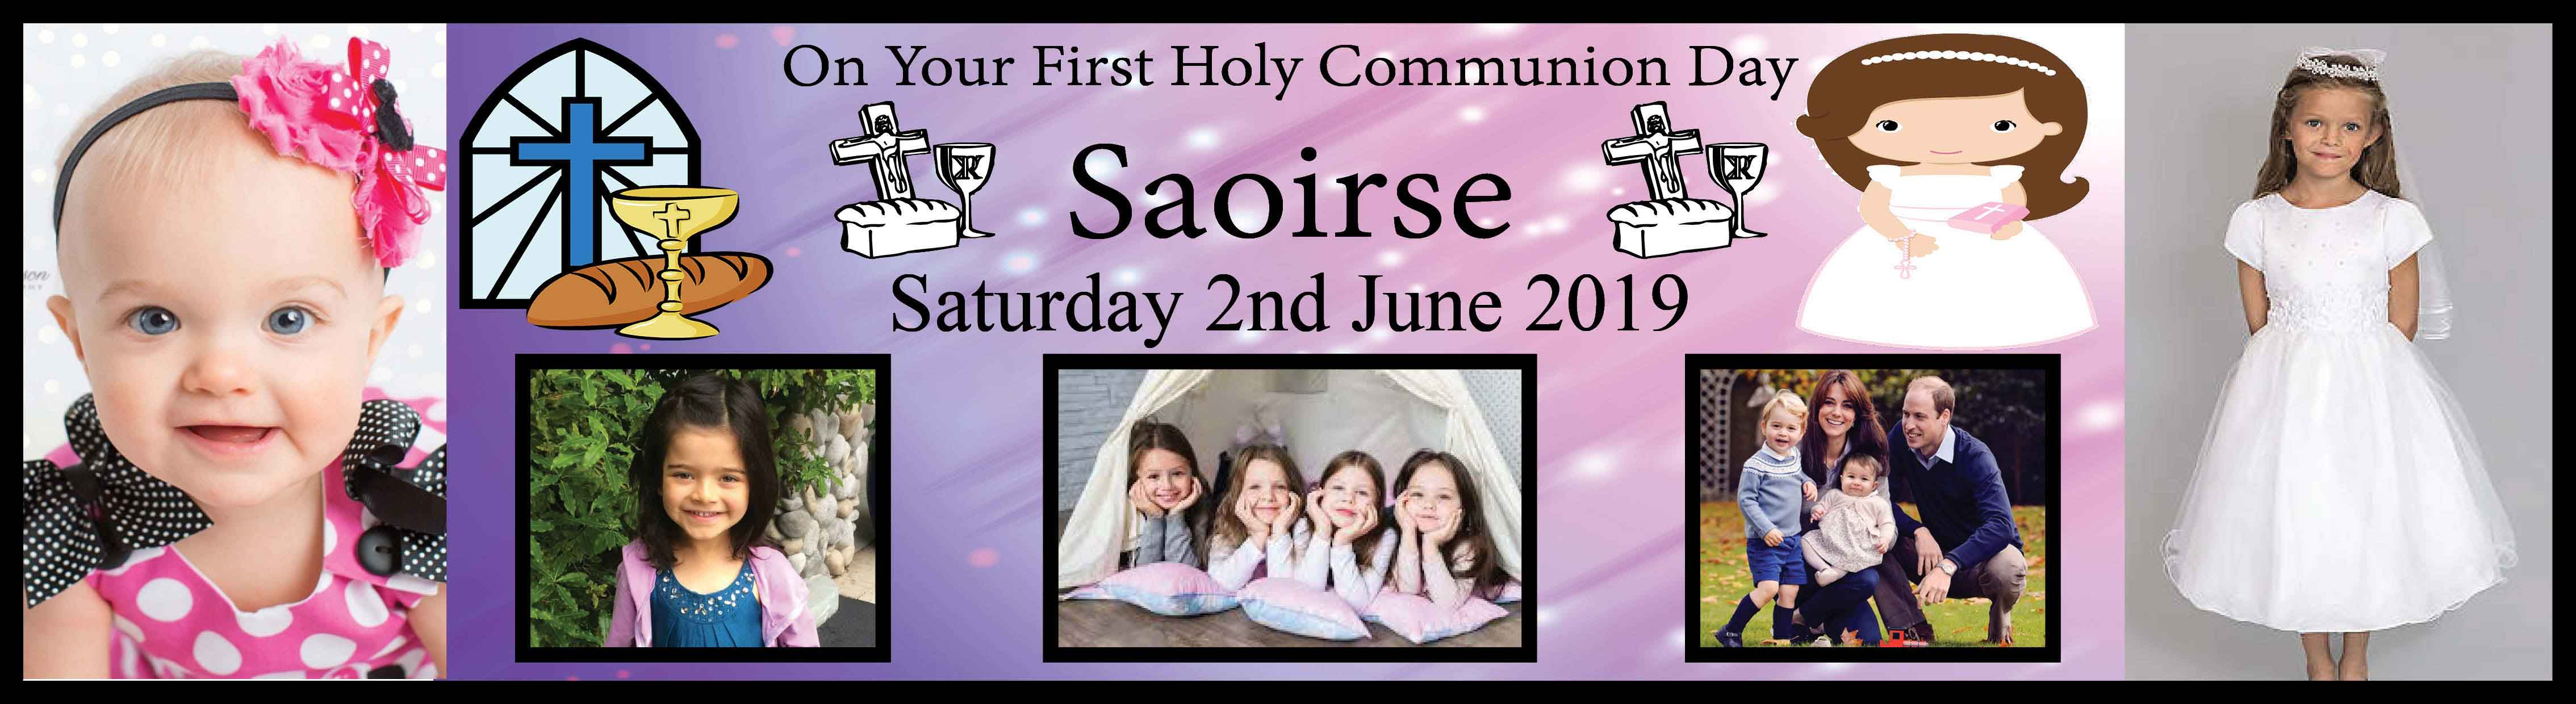 1st Holy Communion Banner 18